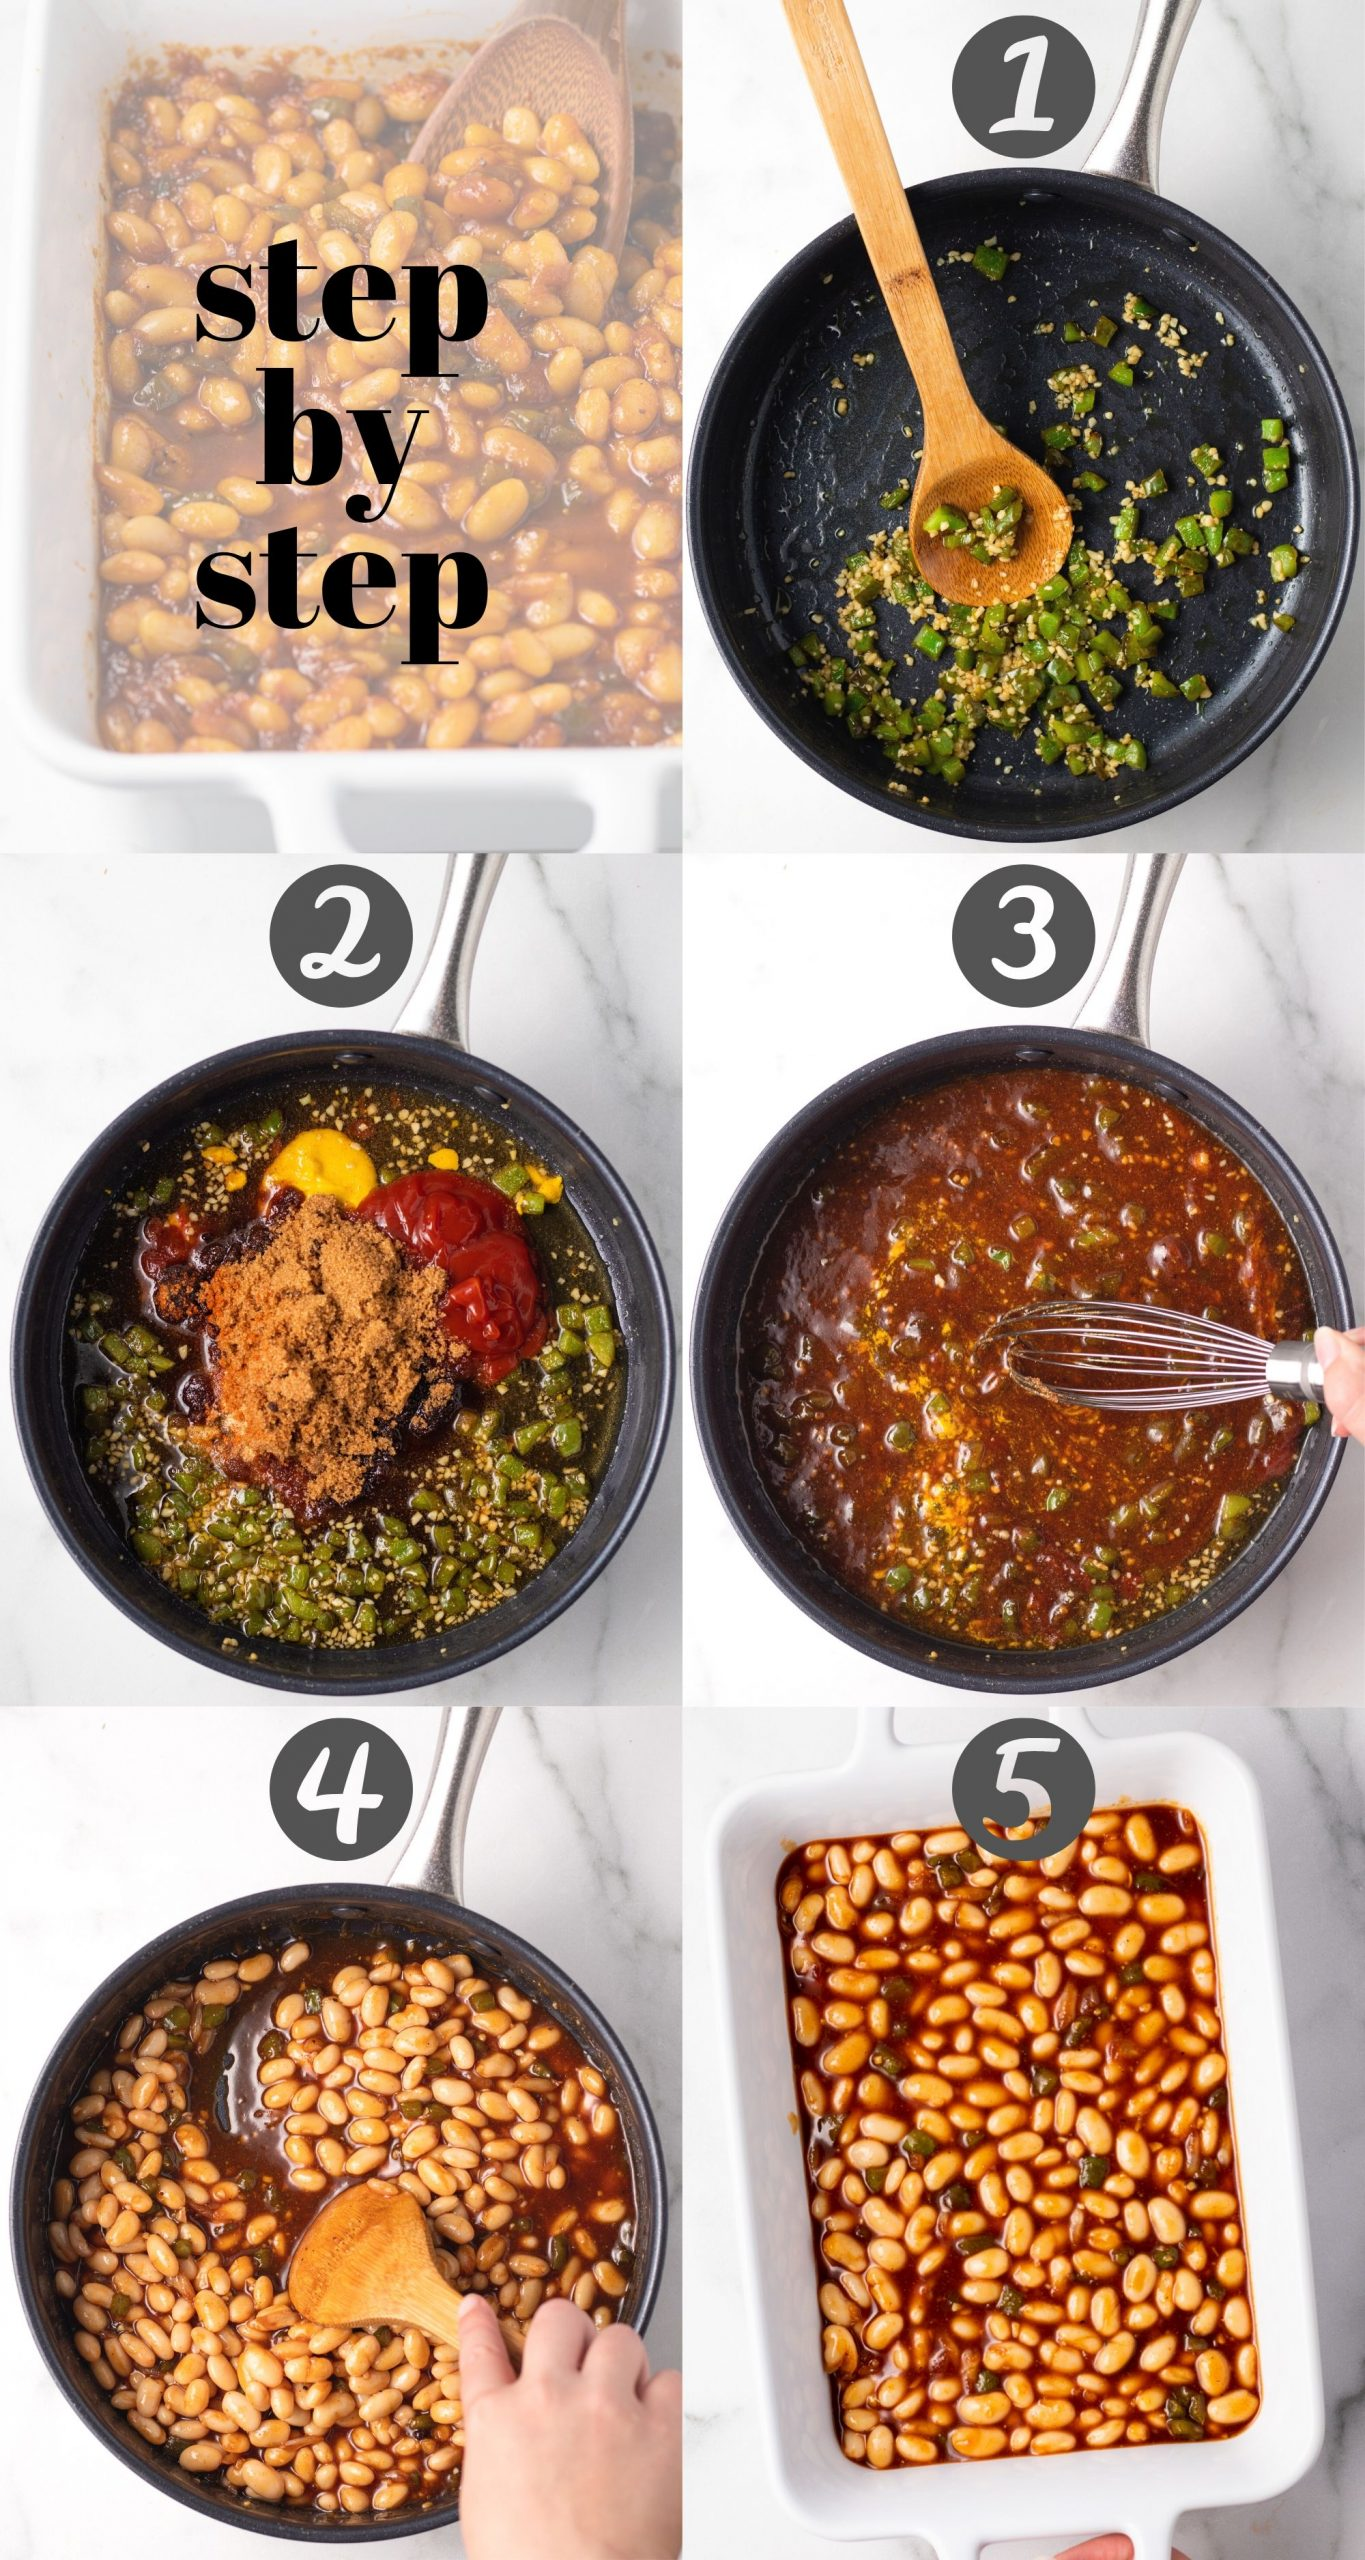 A step-by-step collage for making baked beans. The first image shows green bell peppers and garlic being sautéed in a pan, the second shows the sauce ingredients being added, the third shows the sauce being whisked together, the fourth shows a spoon stirring in the beans, and the fifth image is of the baked beans in a rectangle baking dish.